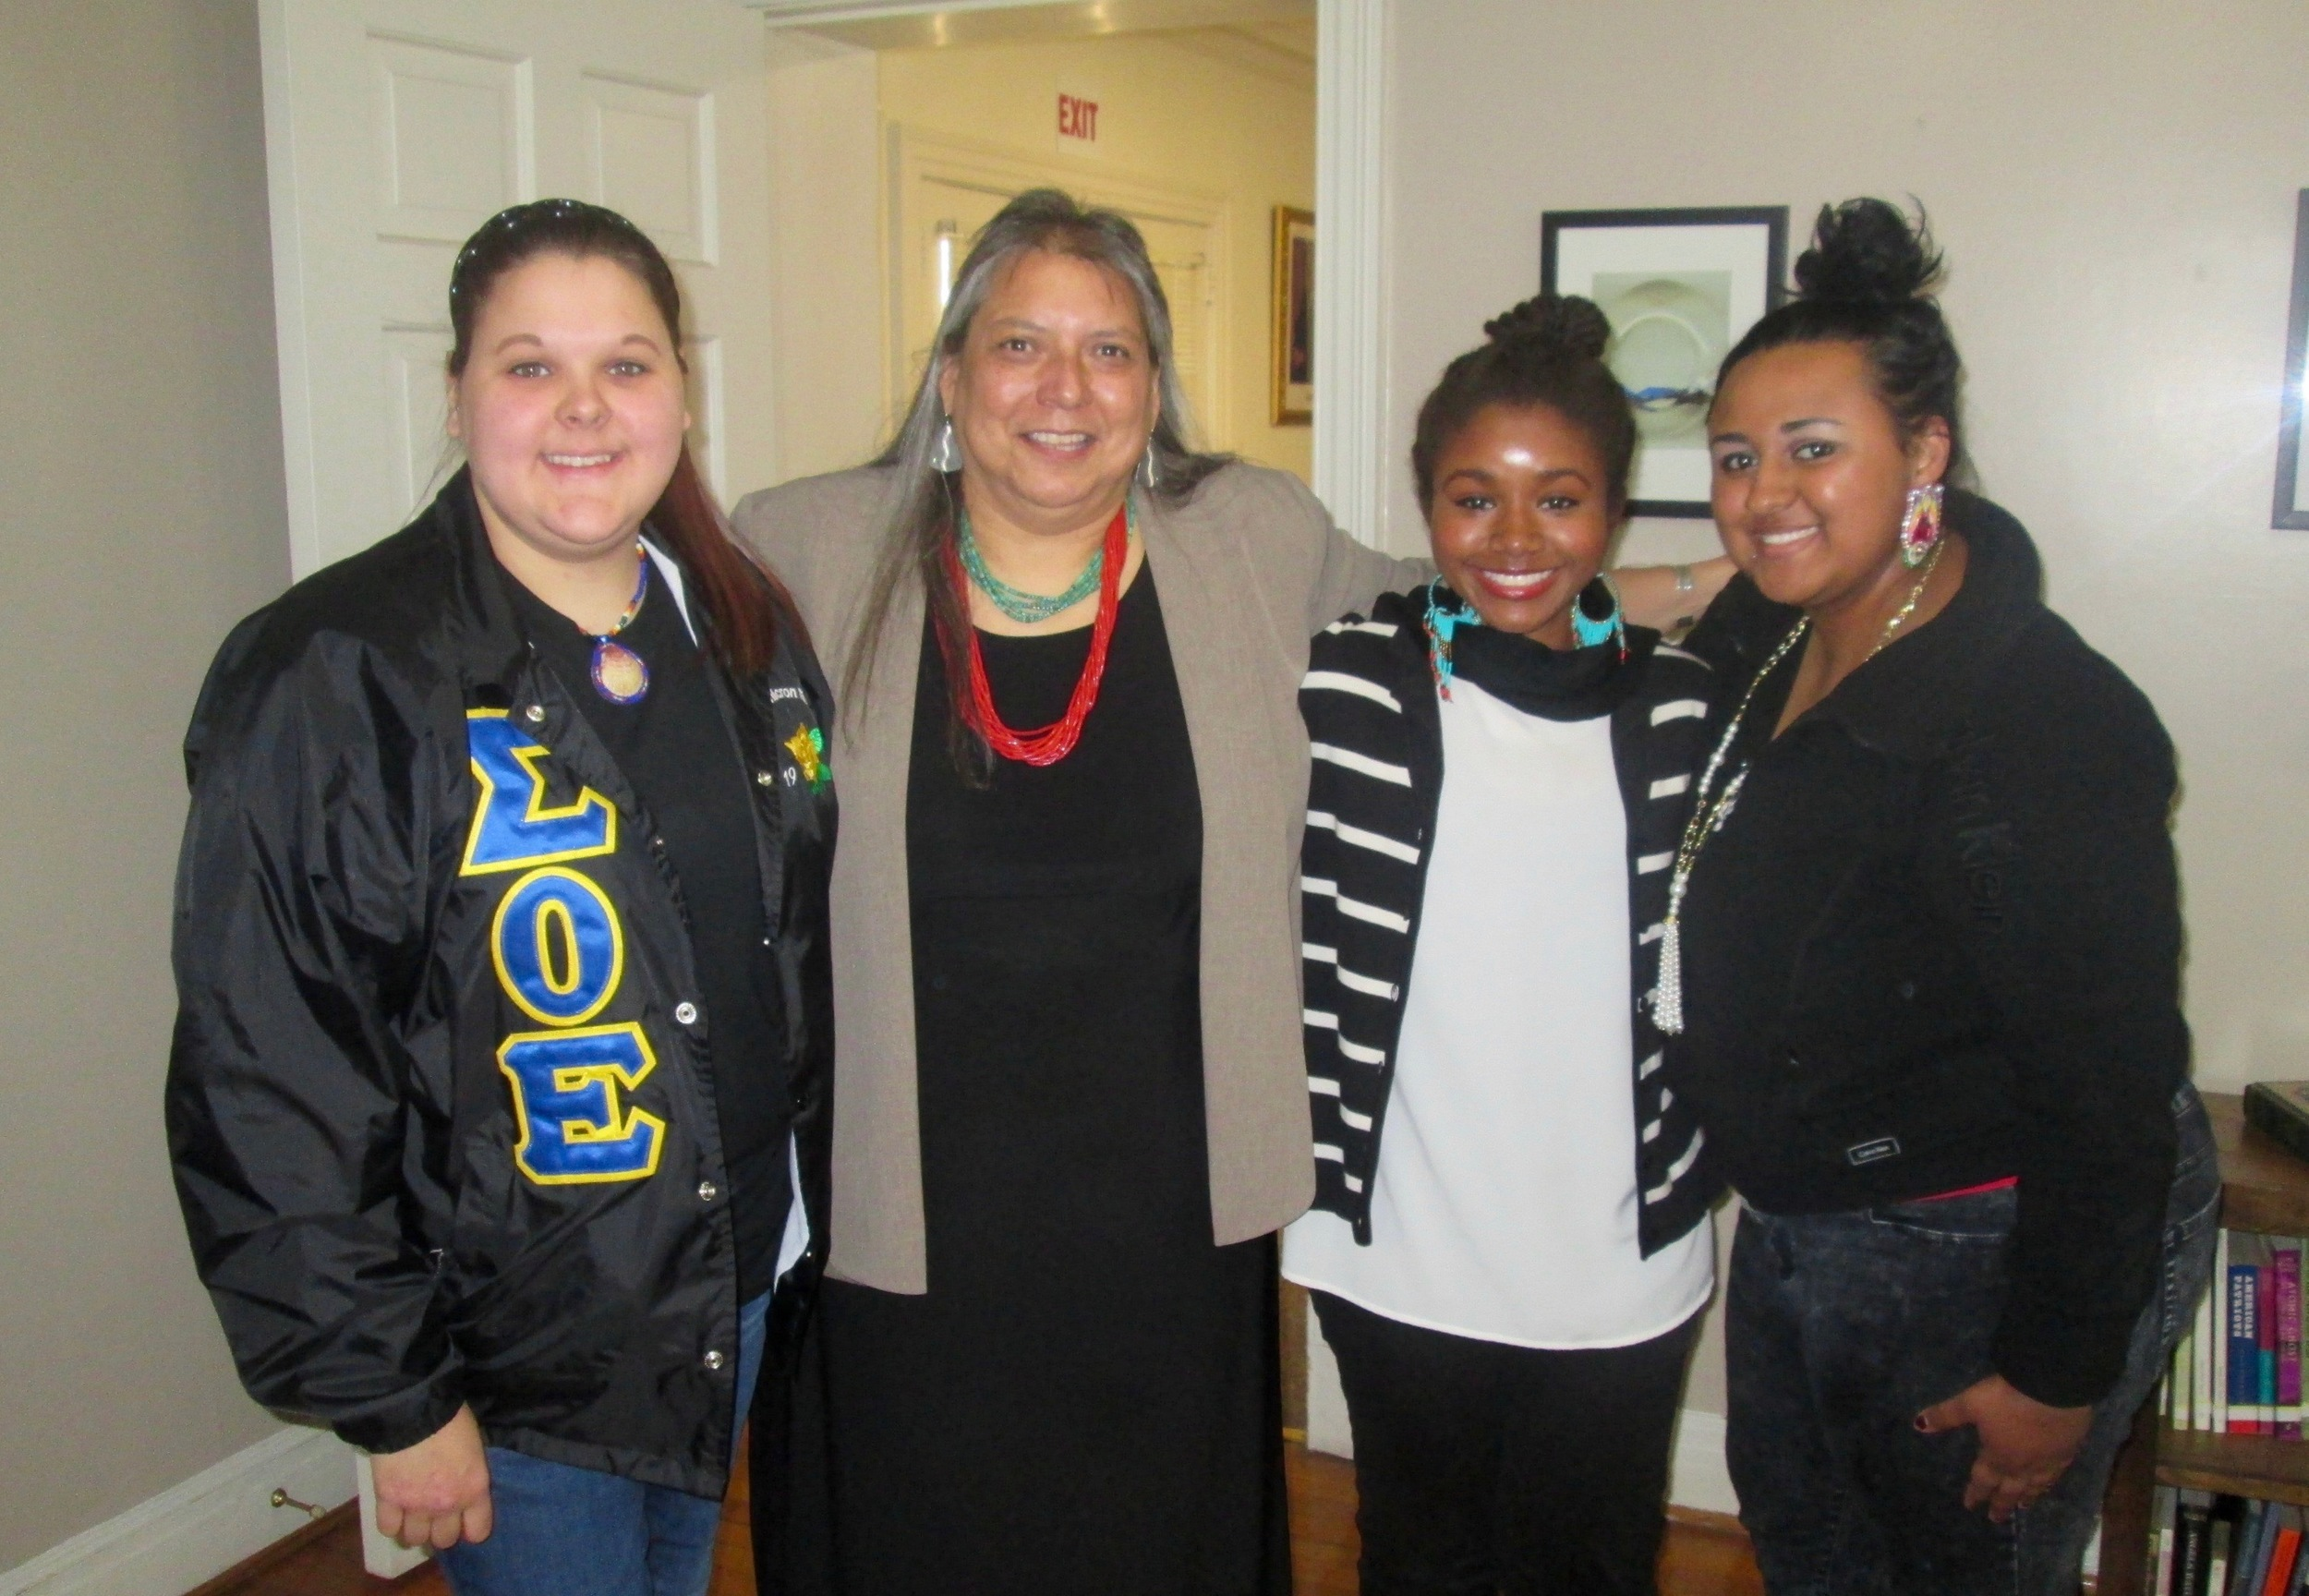 Zonnie with Members of Sigma Omicron Epsilon at ECU